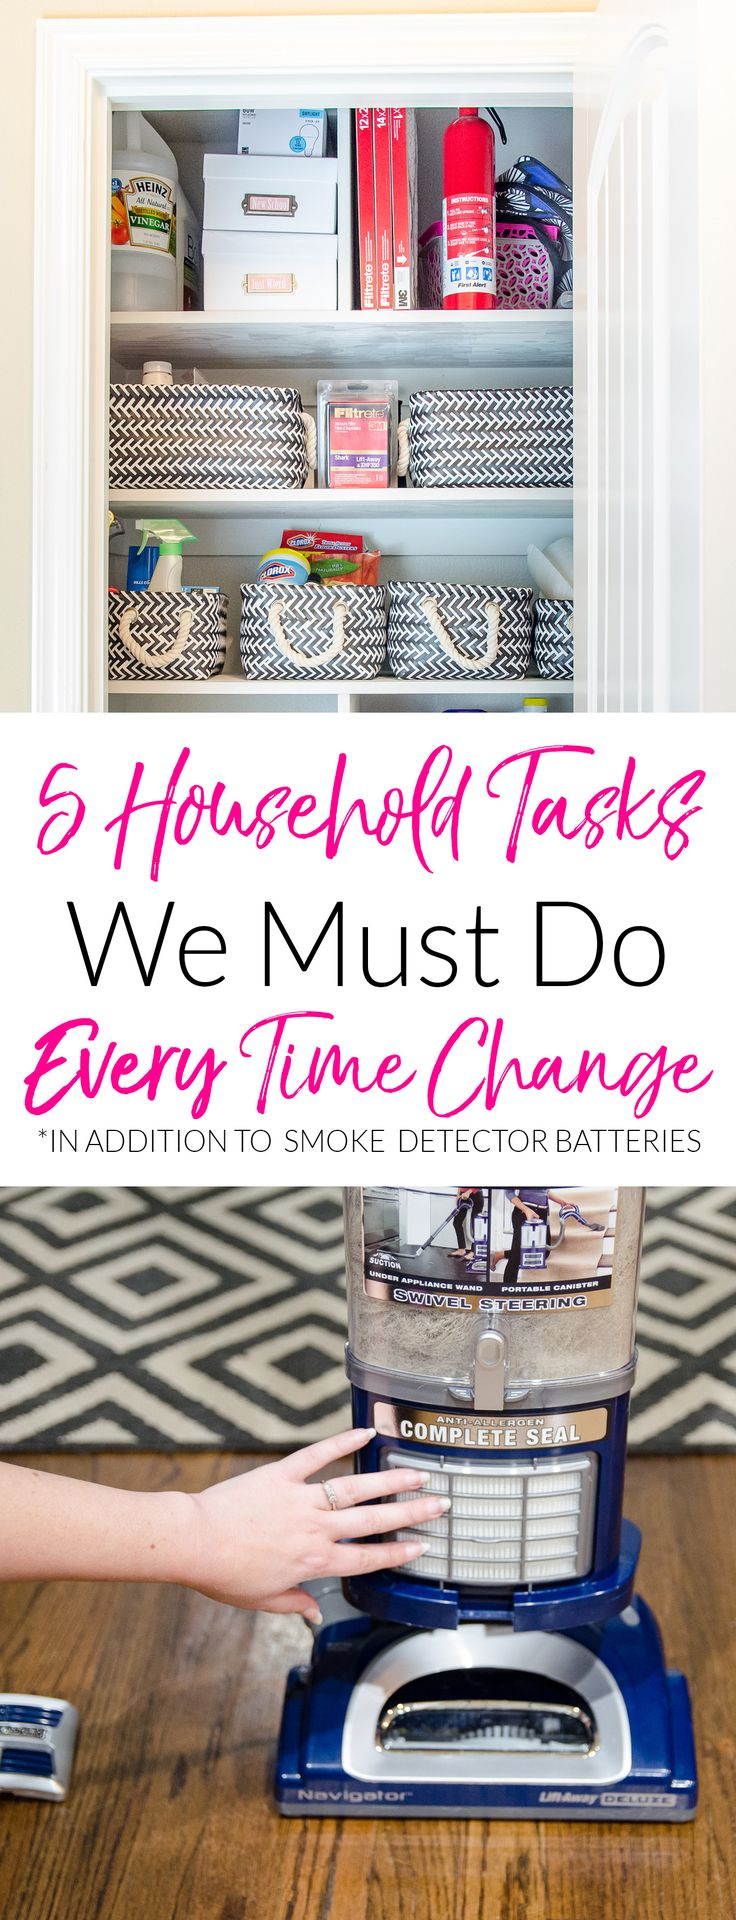 Staying on top of these simple home maintenance tasks can keep your family a bit safer and healthier. Get the list of each quick thing you should be tackling every time the time changes. Finally Daylight Savings Time is helpful around here!  #ad #freshhomehappening